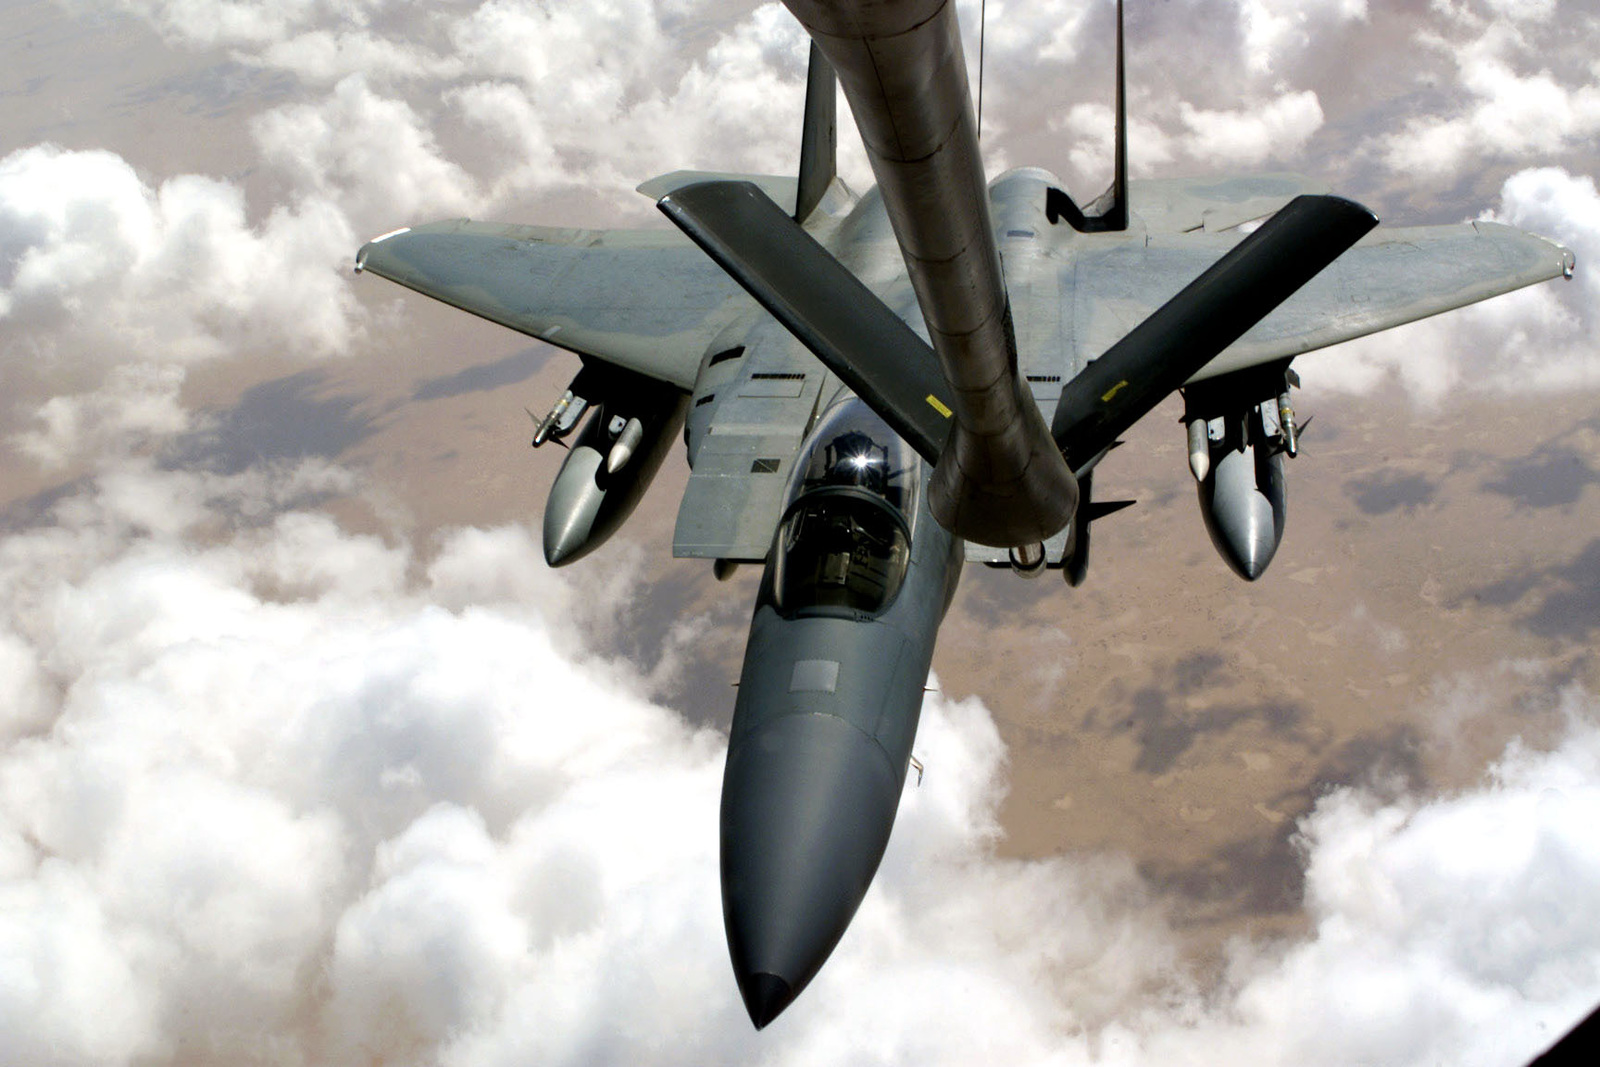 An F-15 Eagle aircraft refuels from a KC-135 Stratotanker (not shown) over Saudi Arabia in support of Operation SOUTHERN WATCH. The F-15 is equipped with AIM 7 Sparrow missiles and AIM 120 advanced medium-range air-to-air missiles (AMRAAM) and is part of the coalition forces of the 363rd Air Expeditionary Wing who enforce the no-fly and no-drive zone in Southern Iraq to protect and defend against Iraqi aggression